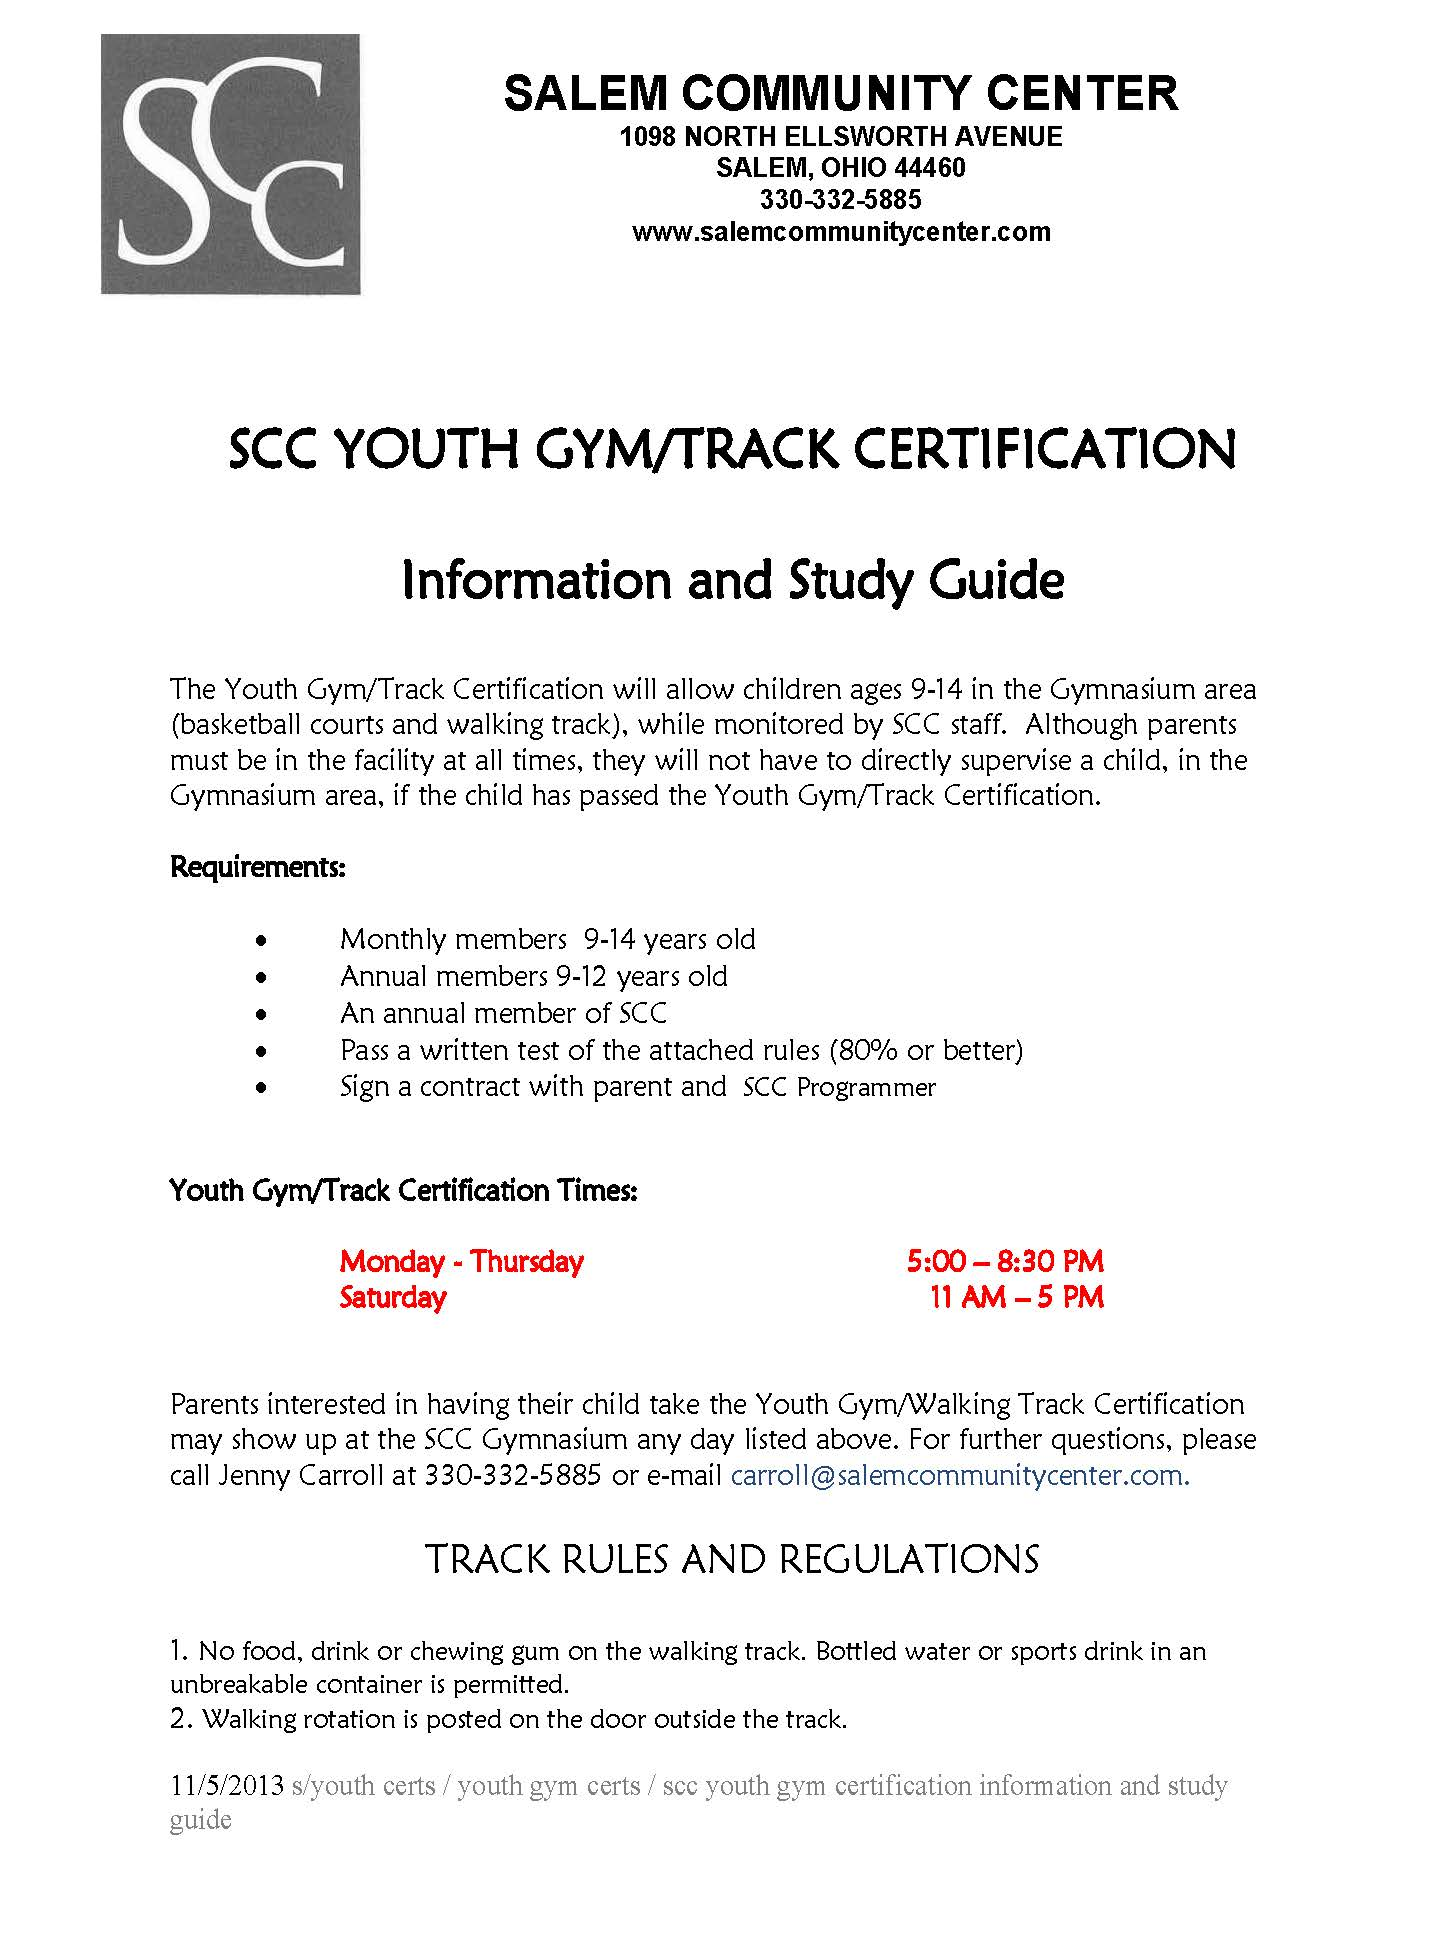 gym track certification Page 1